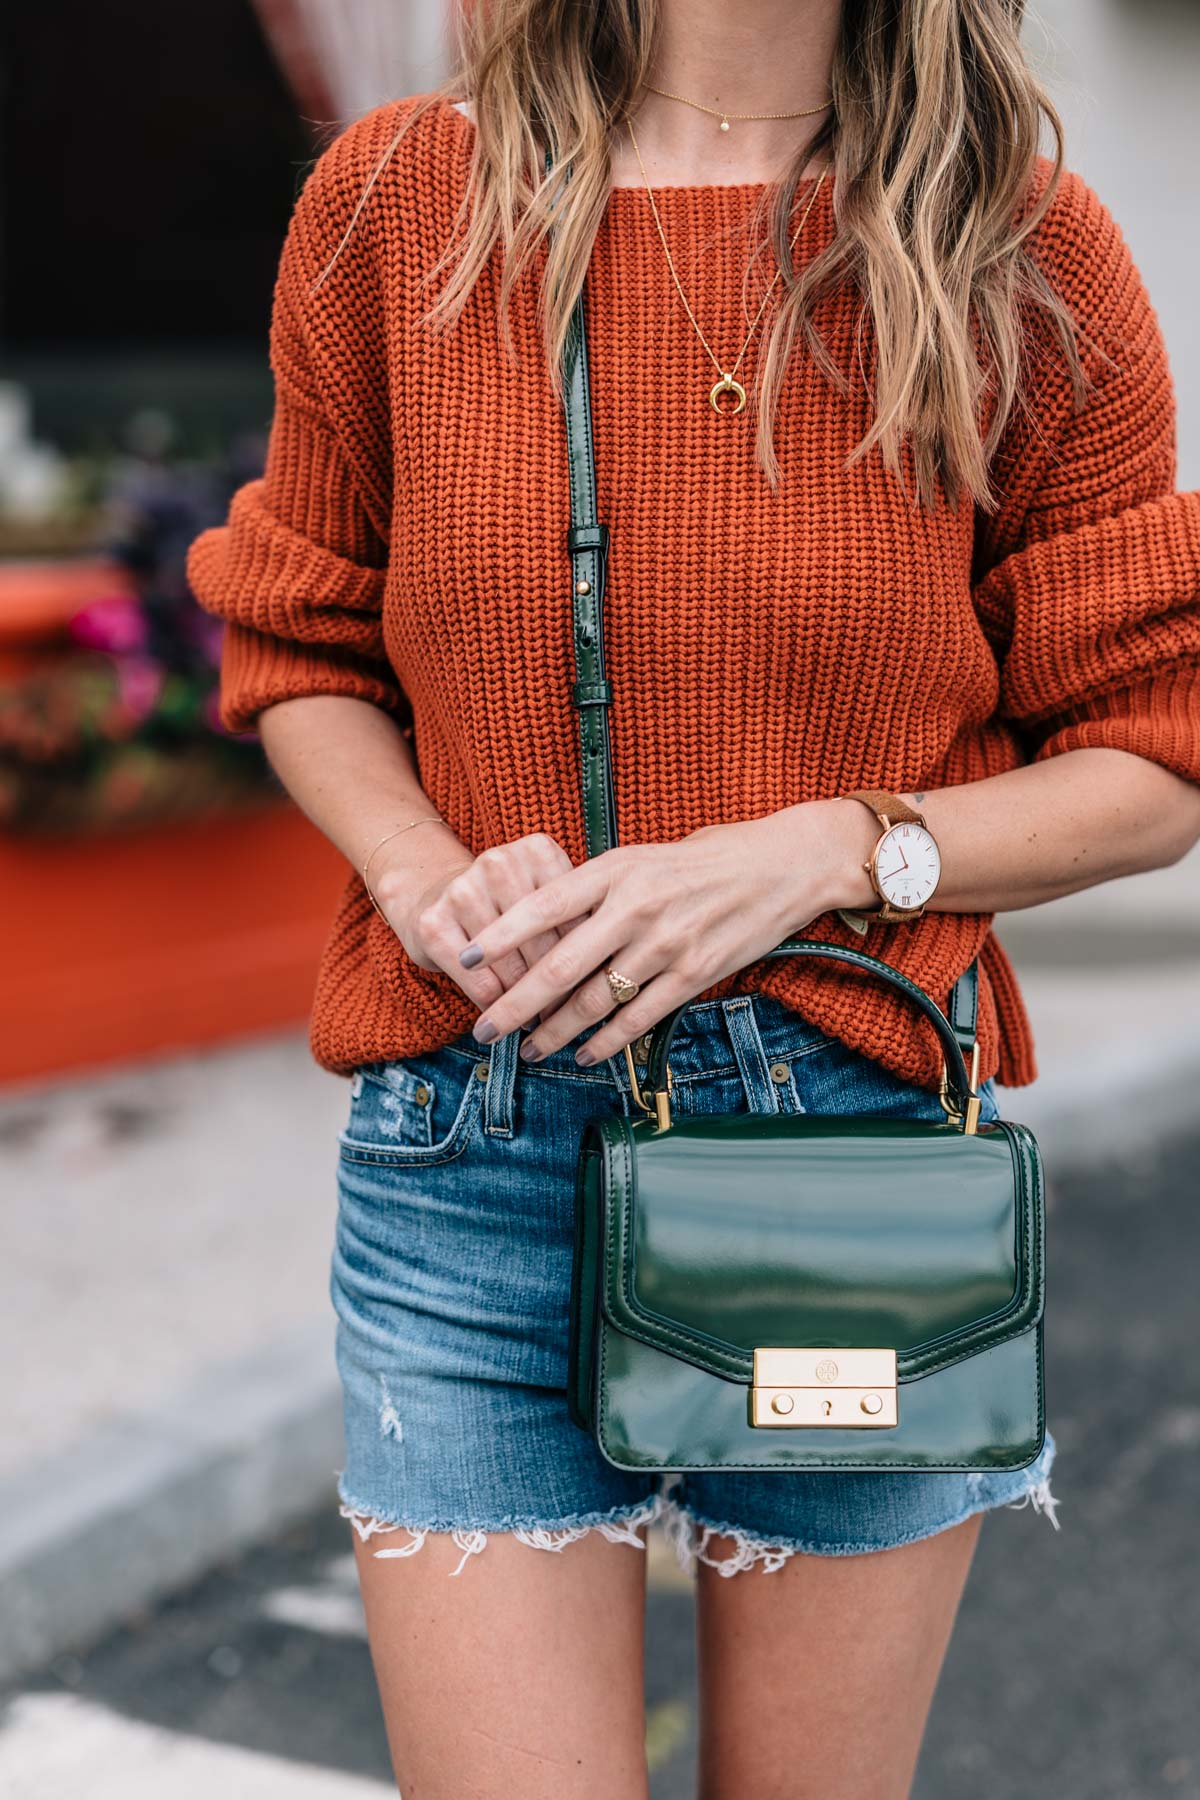 Jess Ann Kirby styles the fall color trend autumn maple in a chunky knit sweater with the tory burch juliette mini satchel